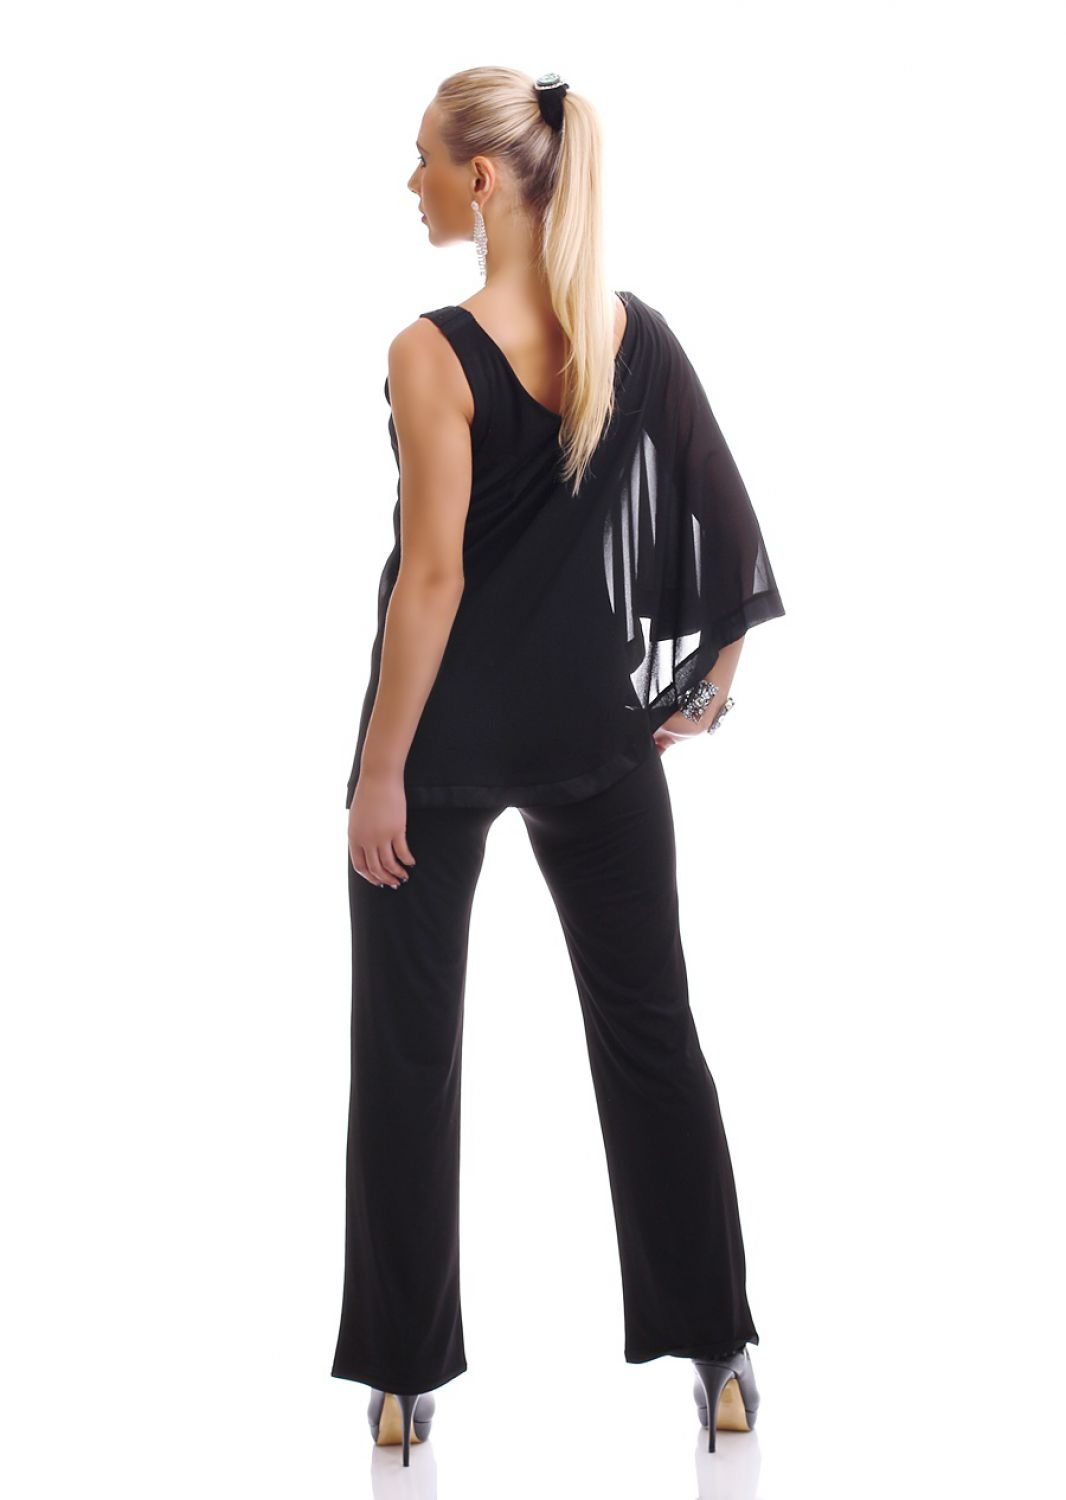 damen eleganter overall jumpsuit einteiler hosenanzug onesie chiffon oberteil ebay. Black Bedroom Furniture Sets. Home Design Ideas